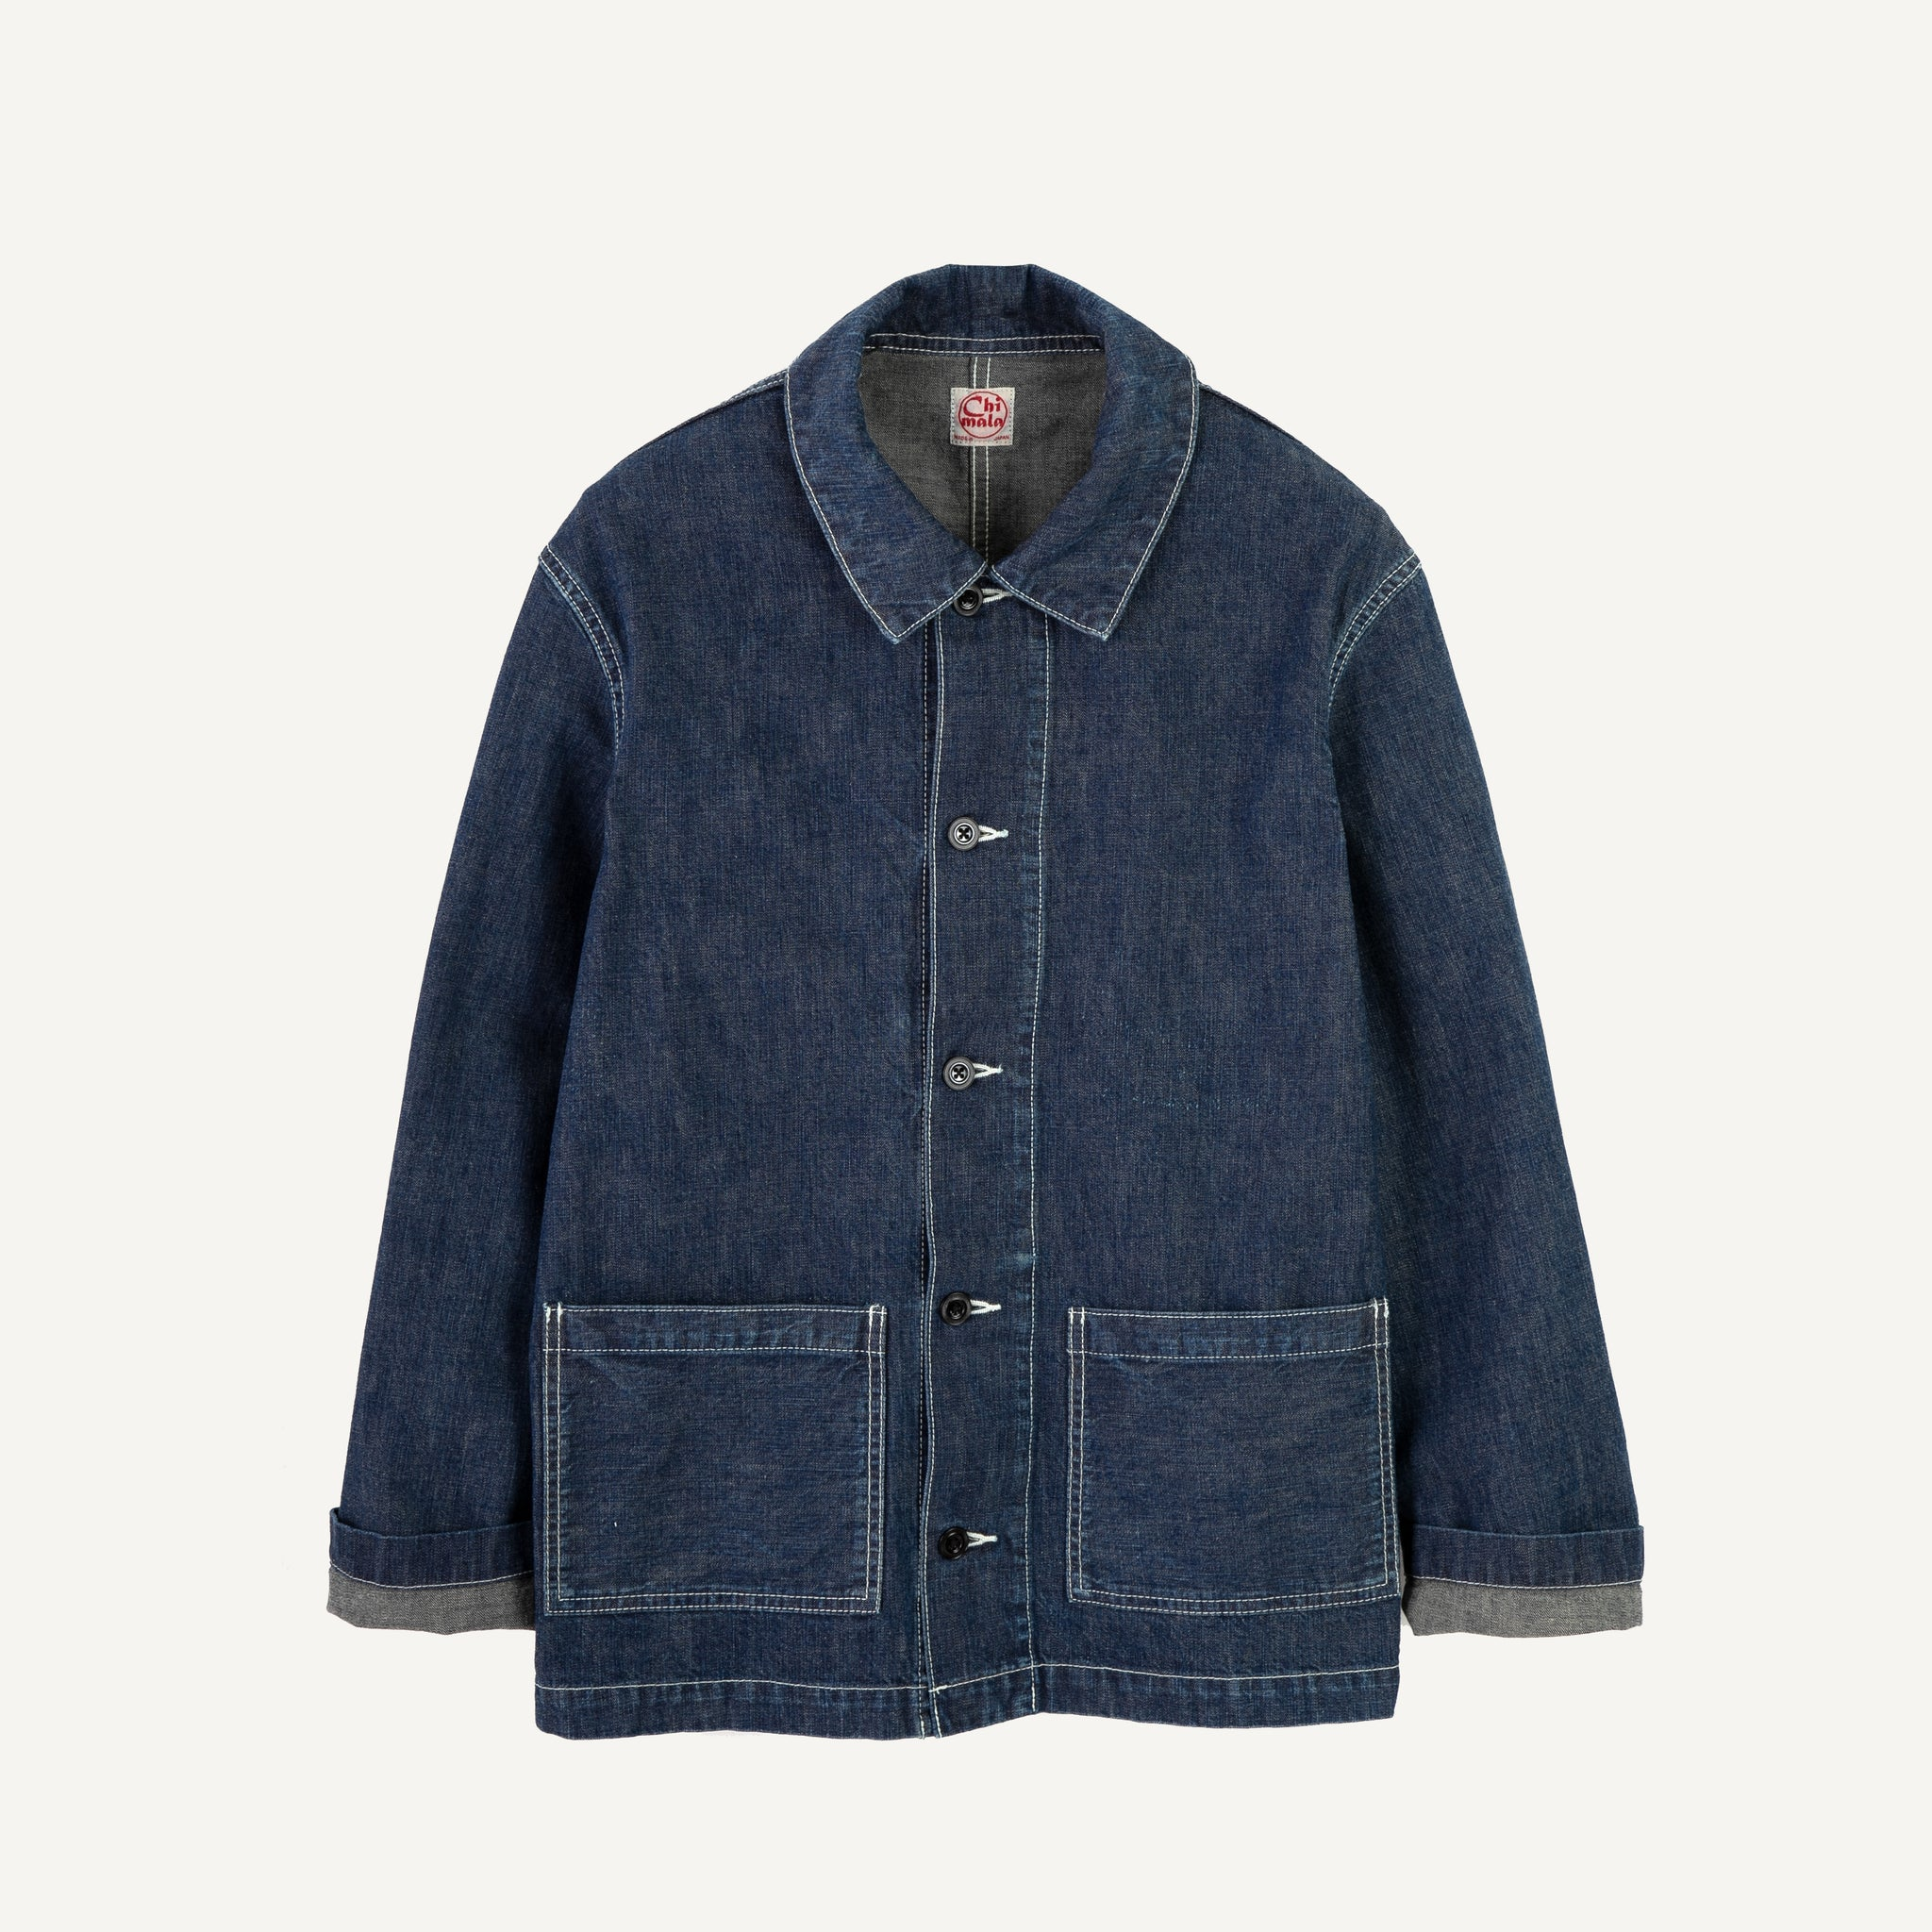 CHIMALA UNISEX DENIM WORK JACKET